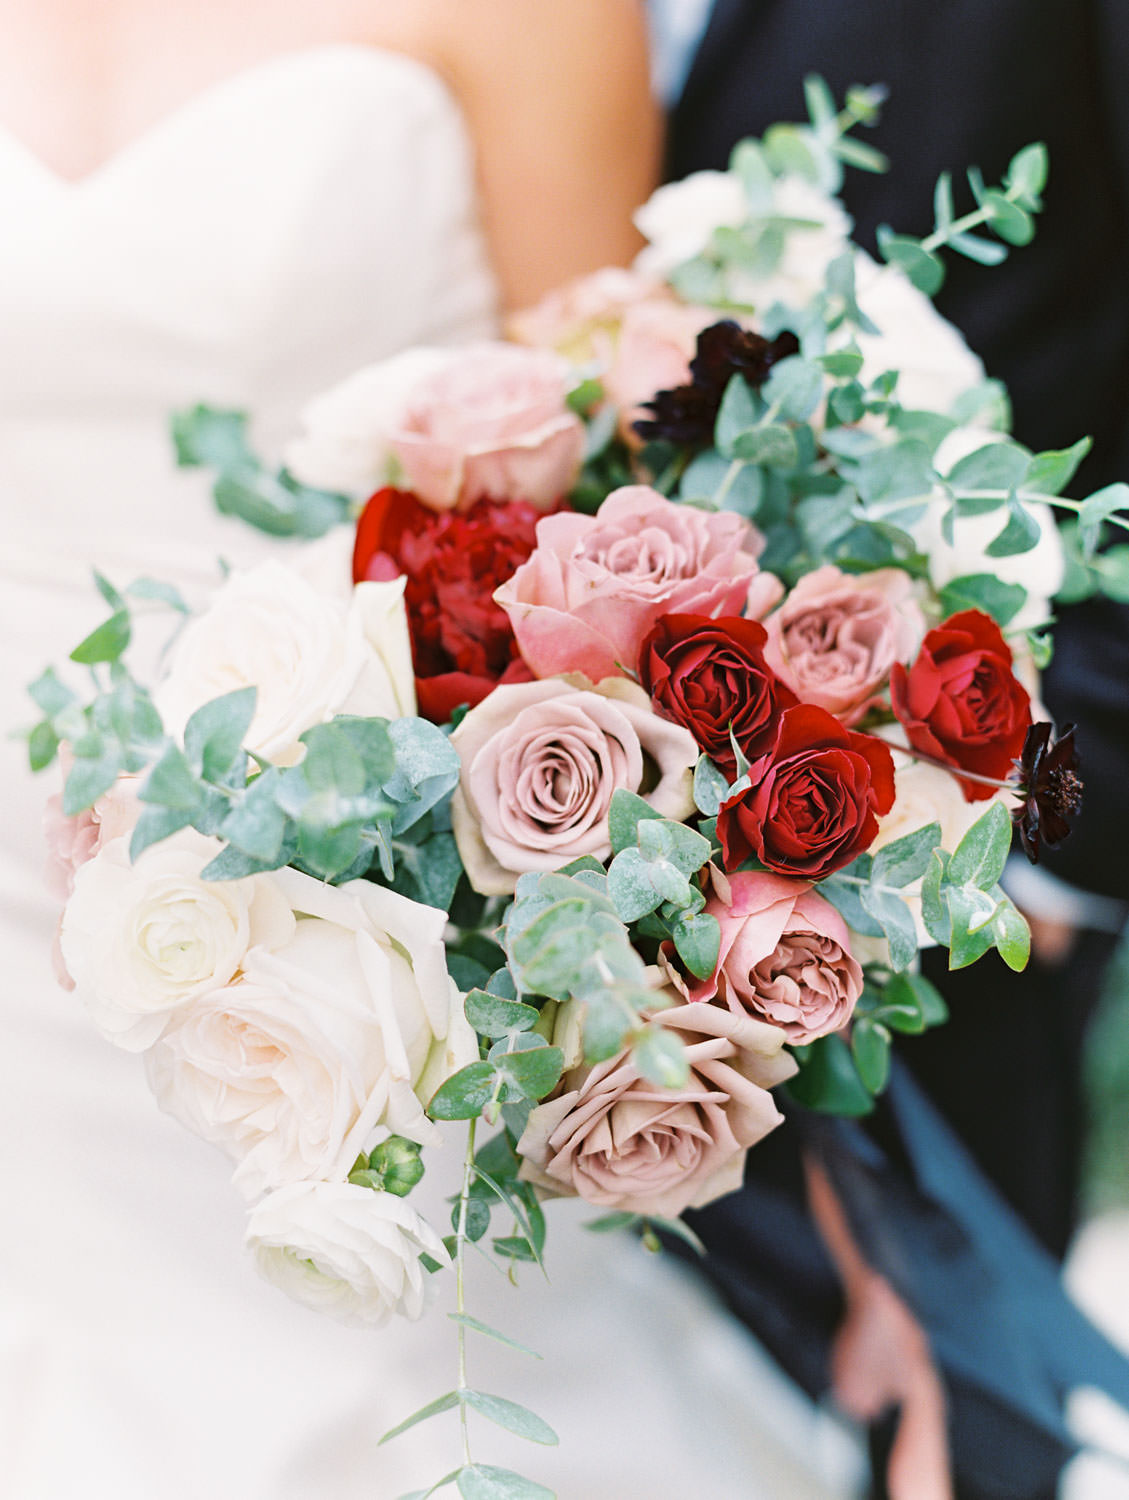 Bride in Anne Barge sweetheart gown with red ivory and mauve bouquet at Green Acre Campus Pointe Wedding, film photo by Cavin Elizabeth Photography